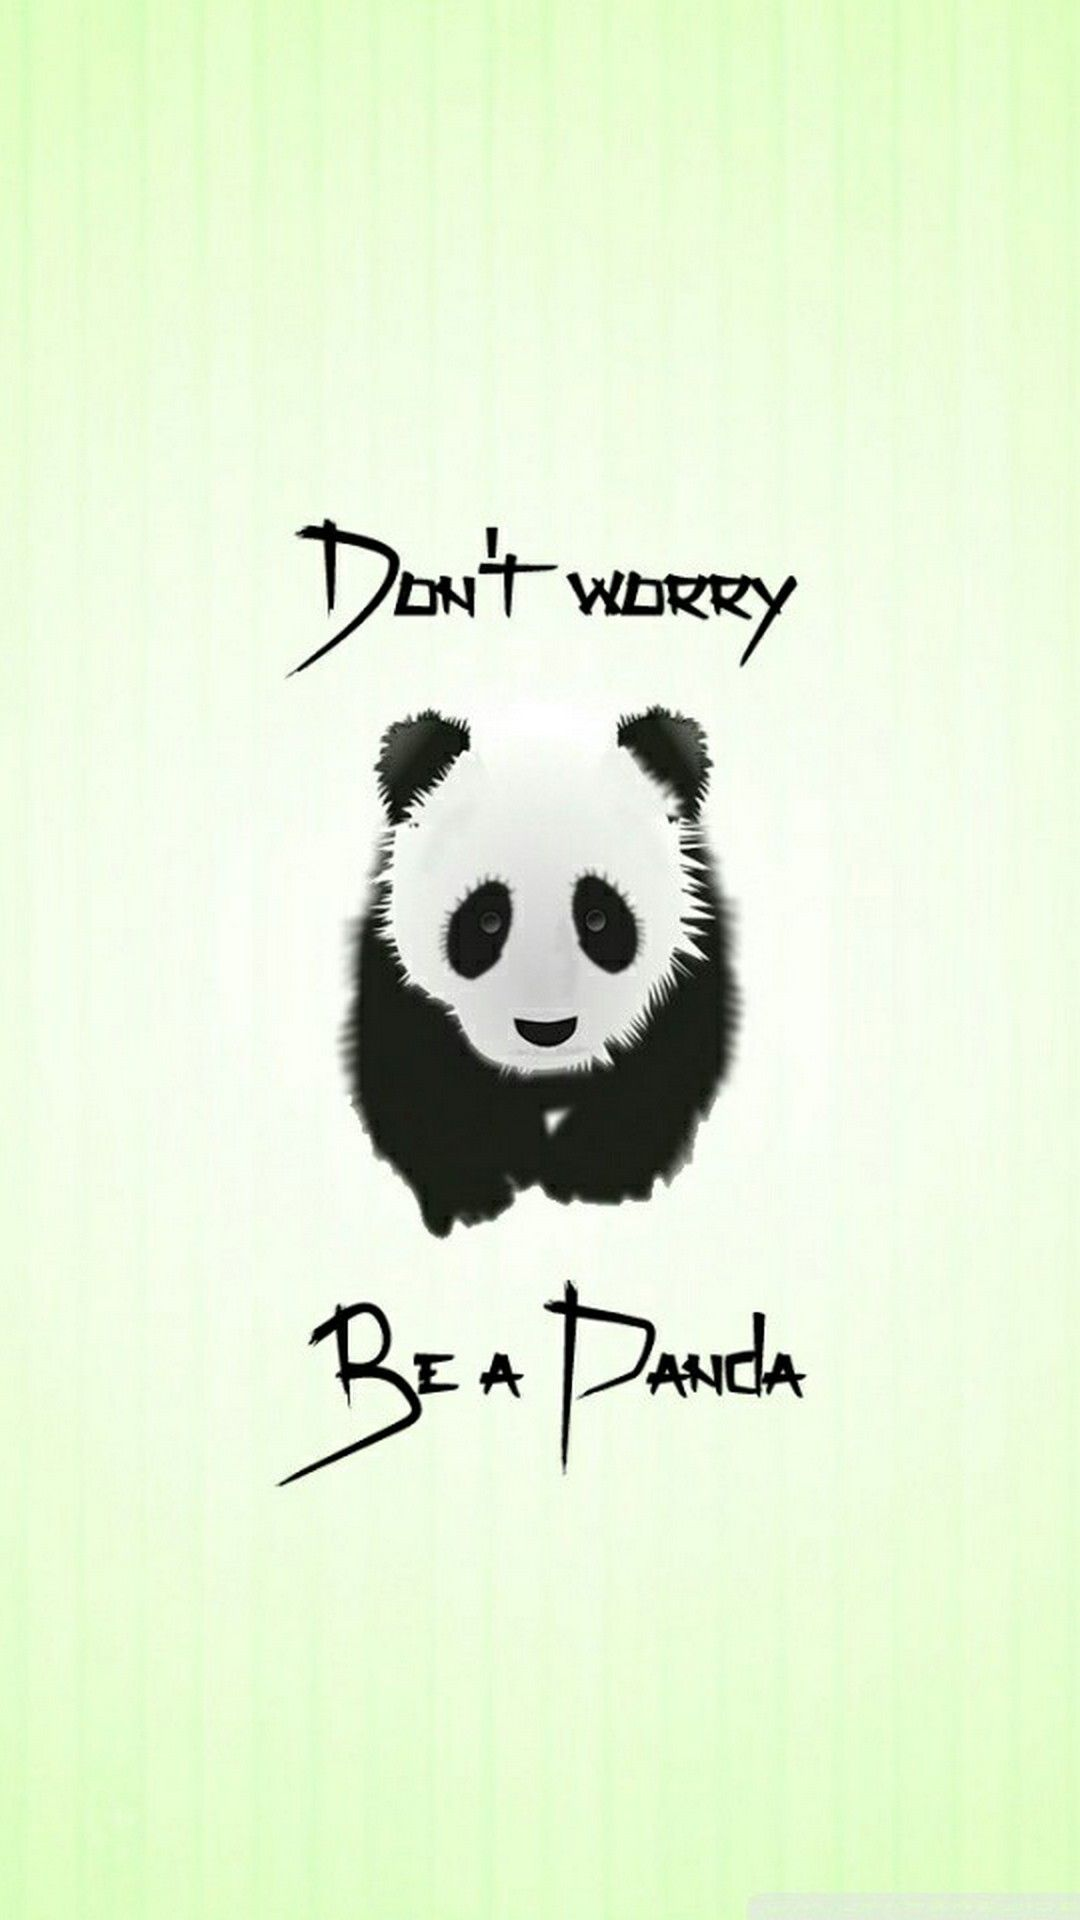 cute dont worry be a panda iphone wallpaper - 2018 iphone wallpapers